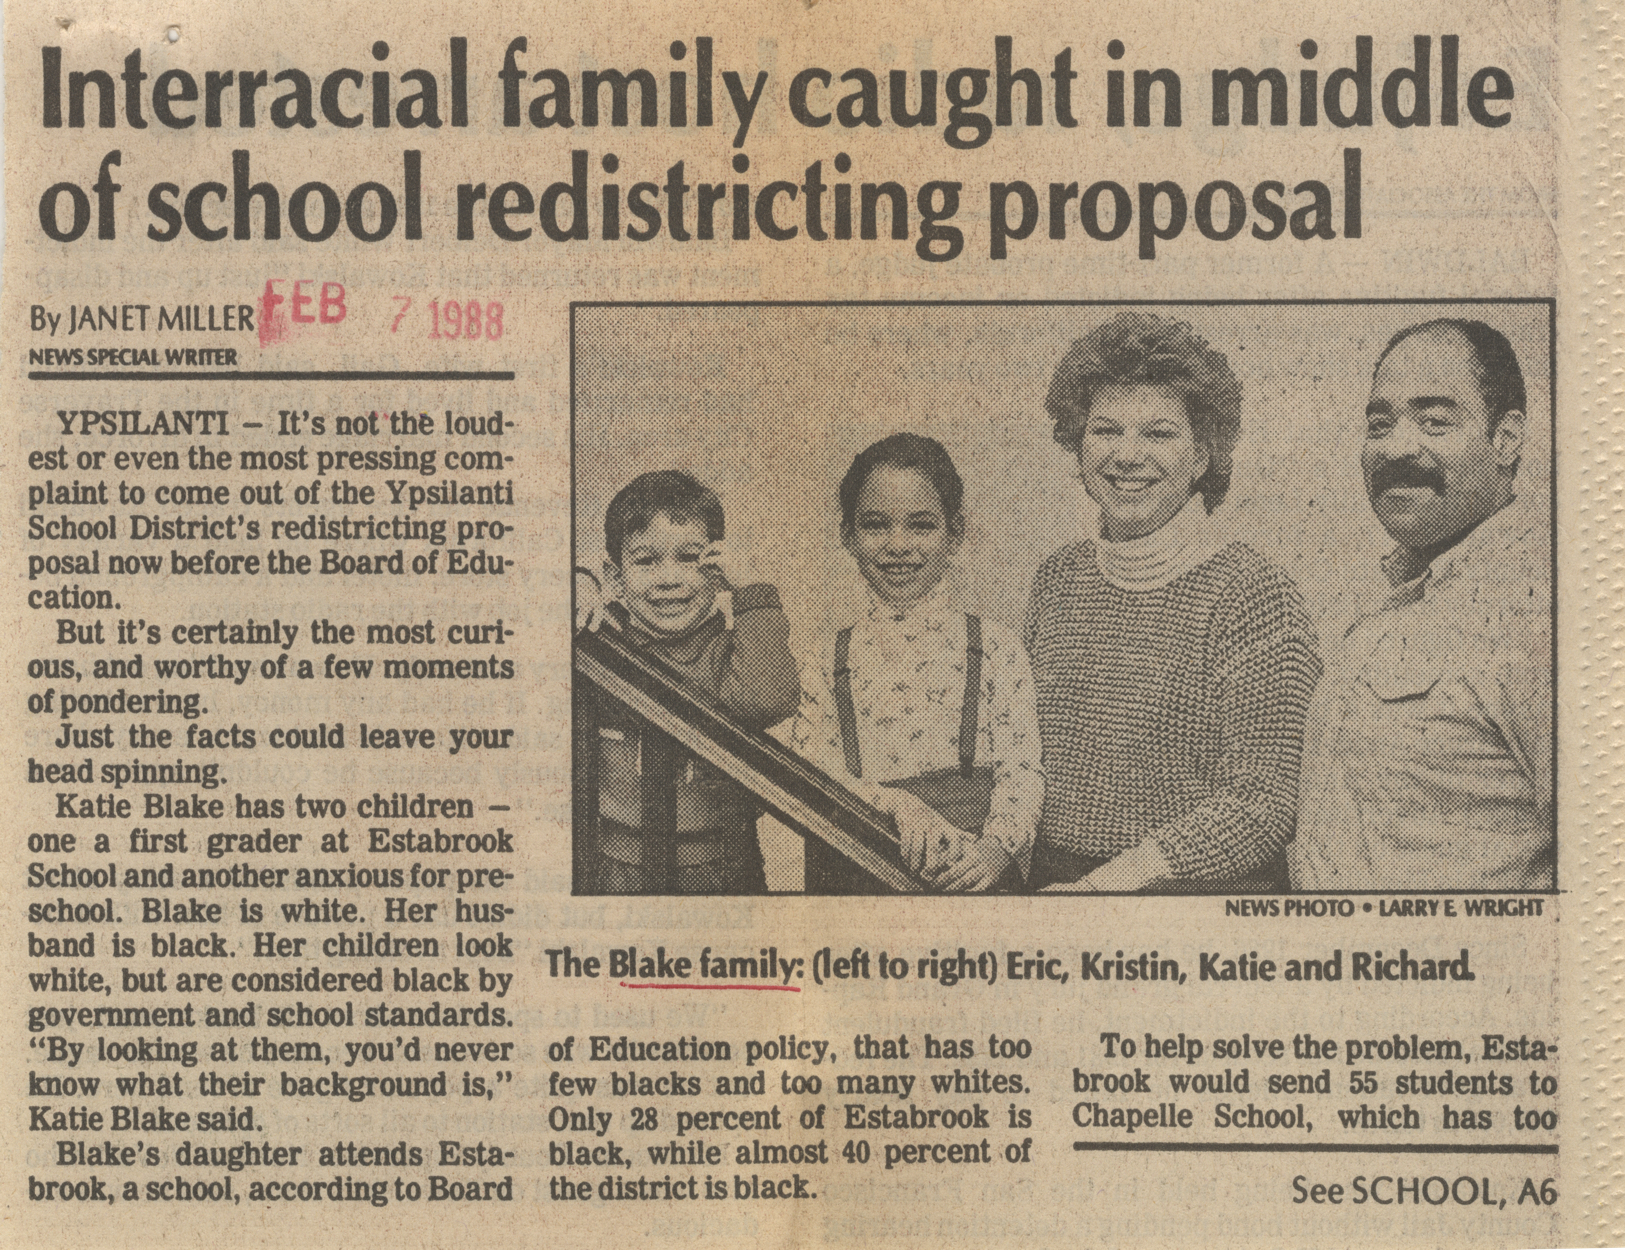 Interracial family caught in middle of school redistricting proposal image